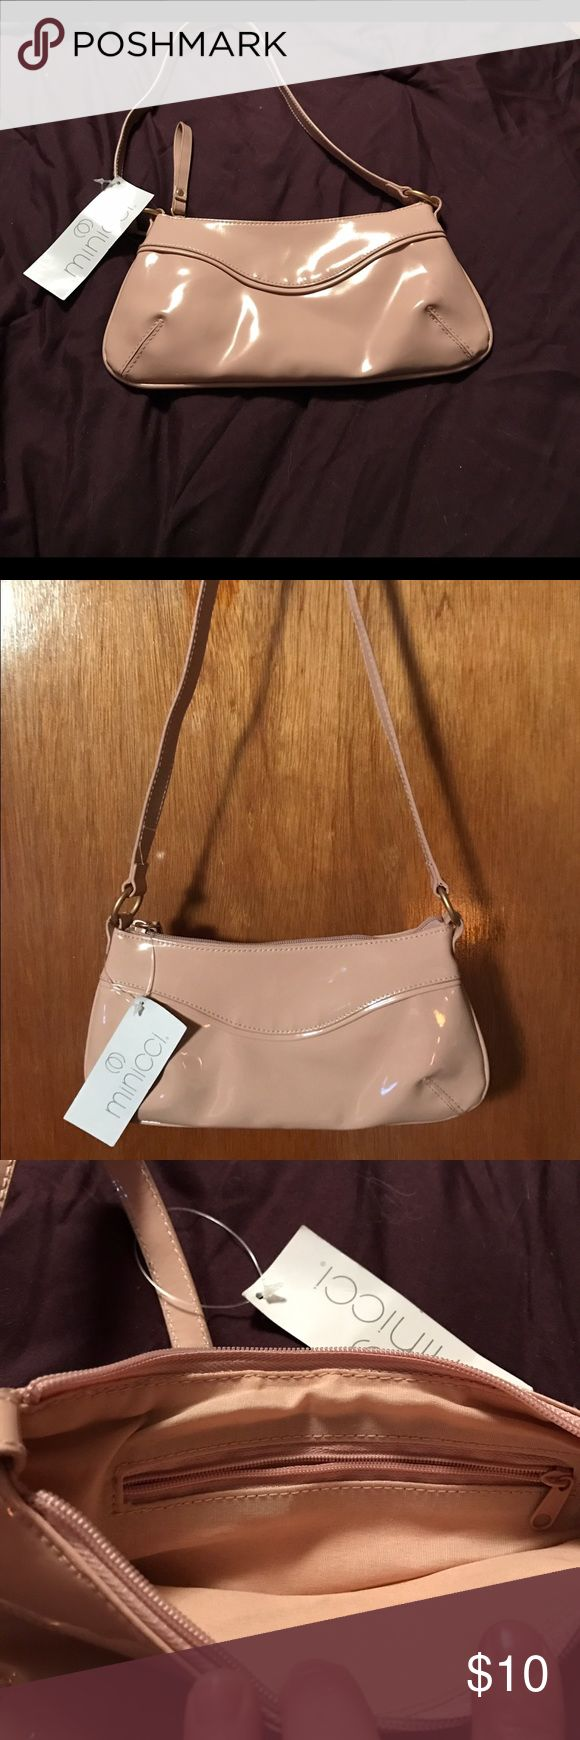 """Cute peachy/beige handbag Casual faux patent leather purse. So soft! Interior lining matches neutral purse color. Zippered pocket inside.  Dimensions 10""""W x 5""""H x 1/2""""W  strap is 34"""" long and is not adjustable. Zippered closure has matching faux patent leather pull. Excellent condition. No marks or scratches seen on inspection. Minicci Bags Mini Bags"""